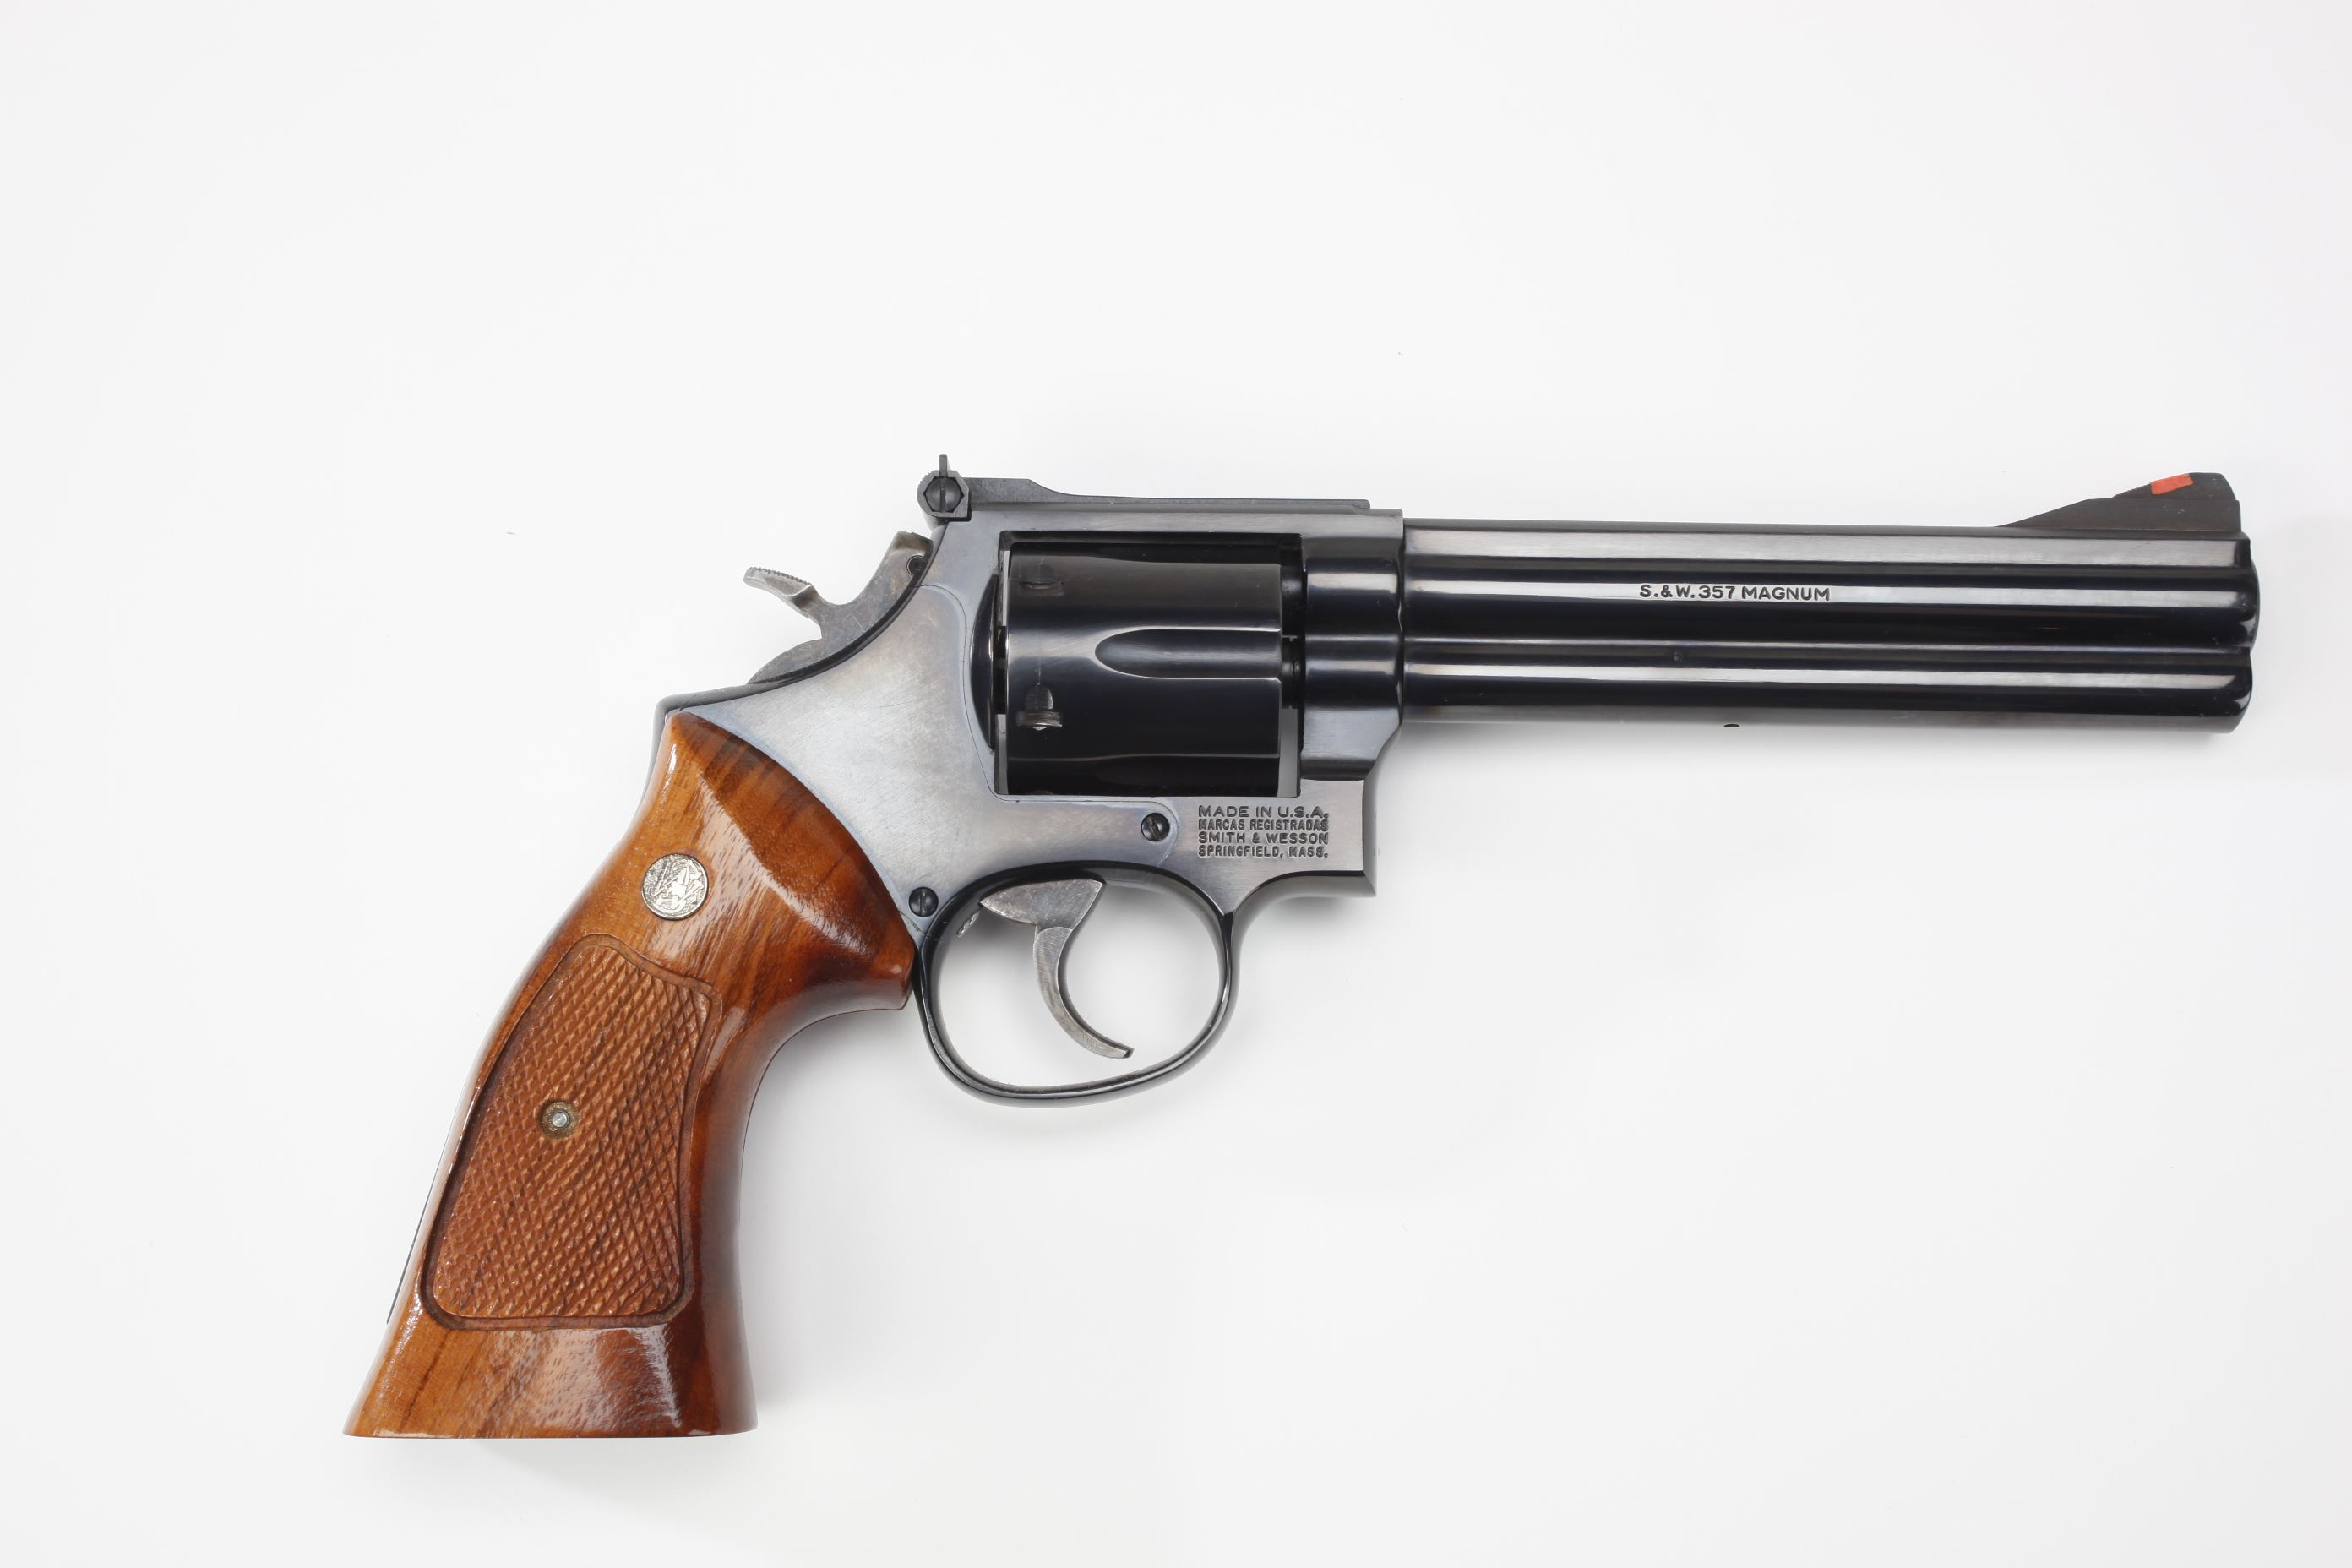 Smith & Wesson Model 586 Combat Magnum